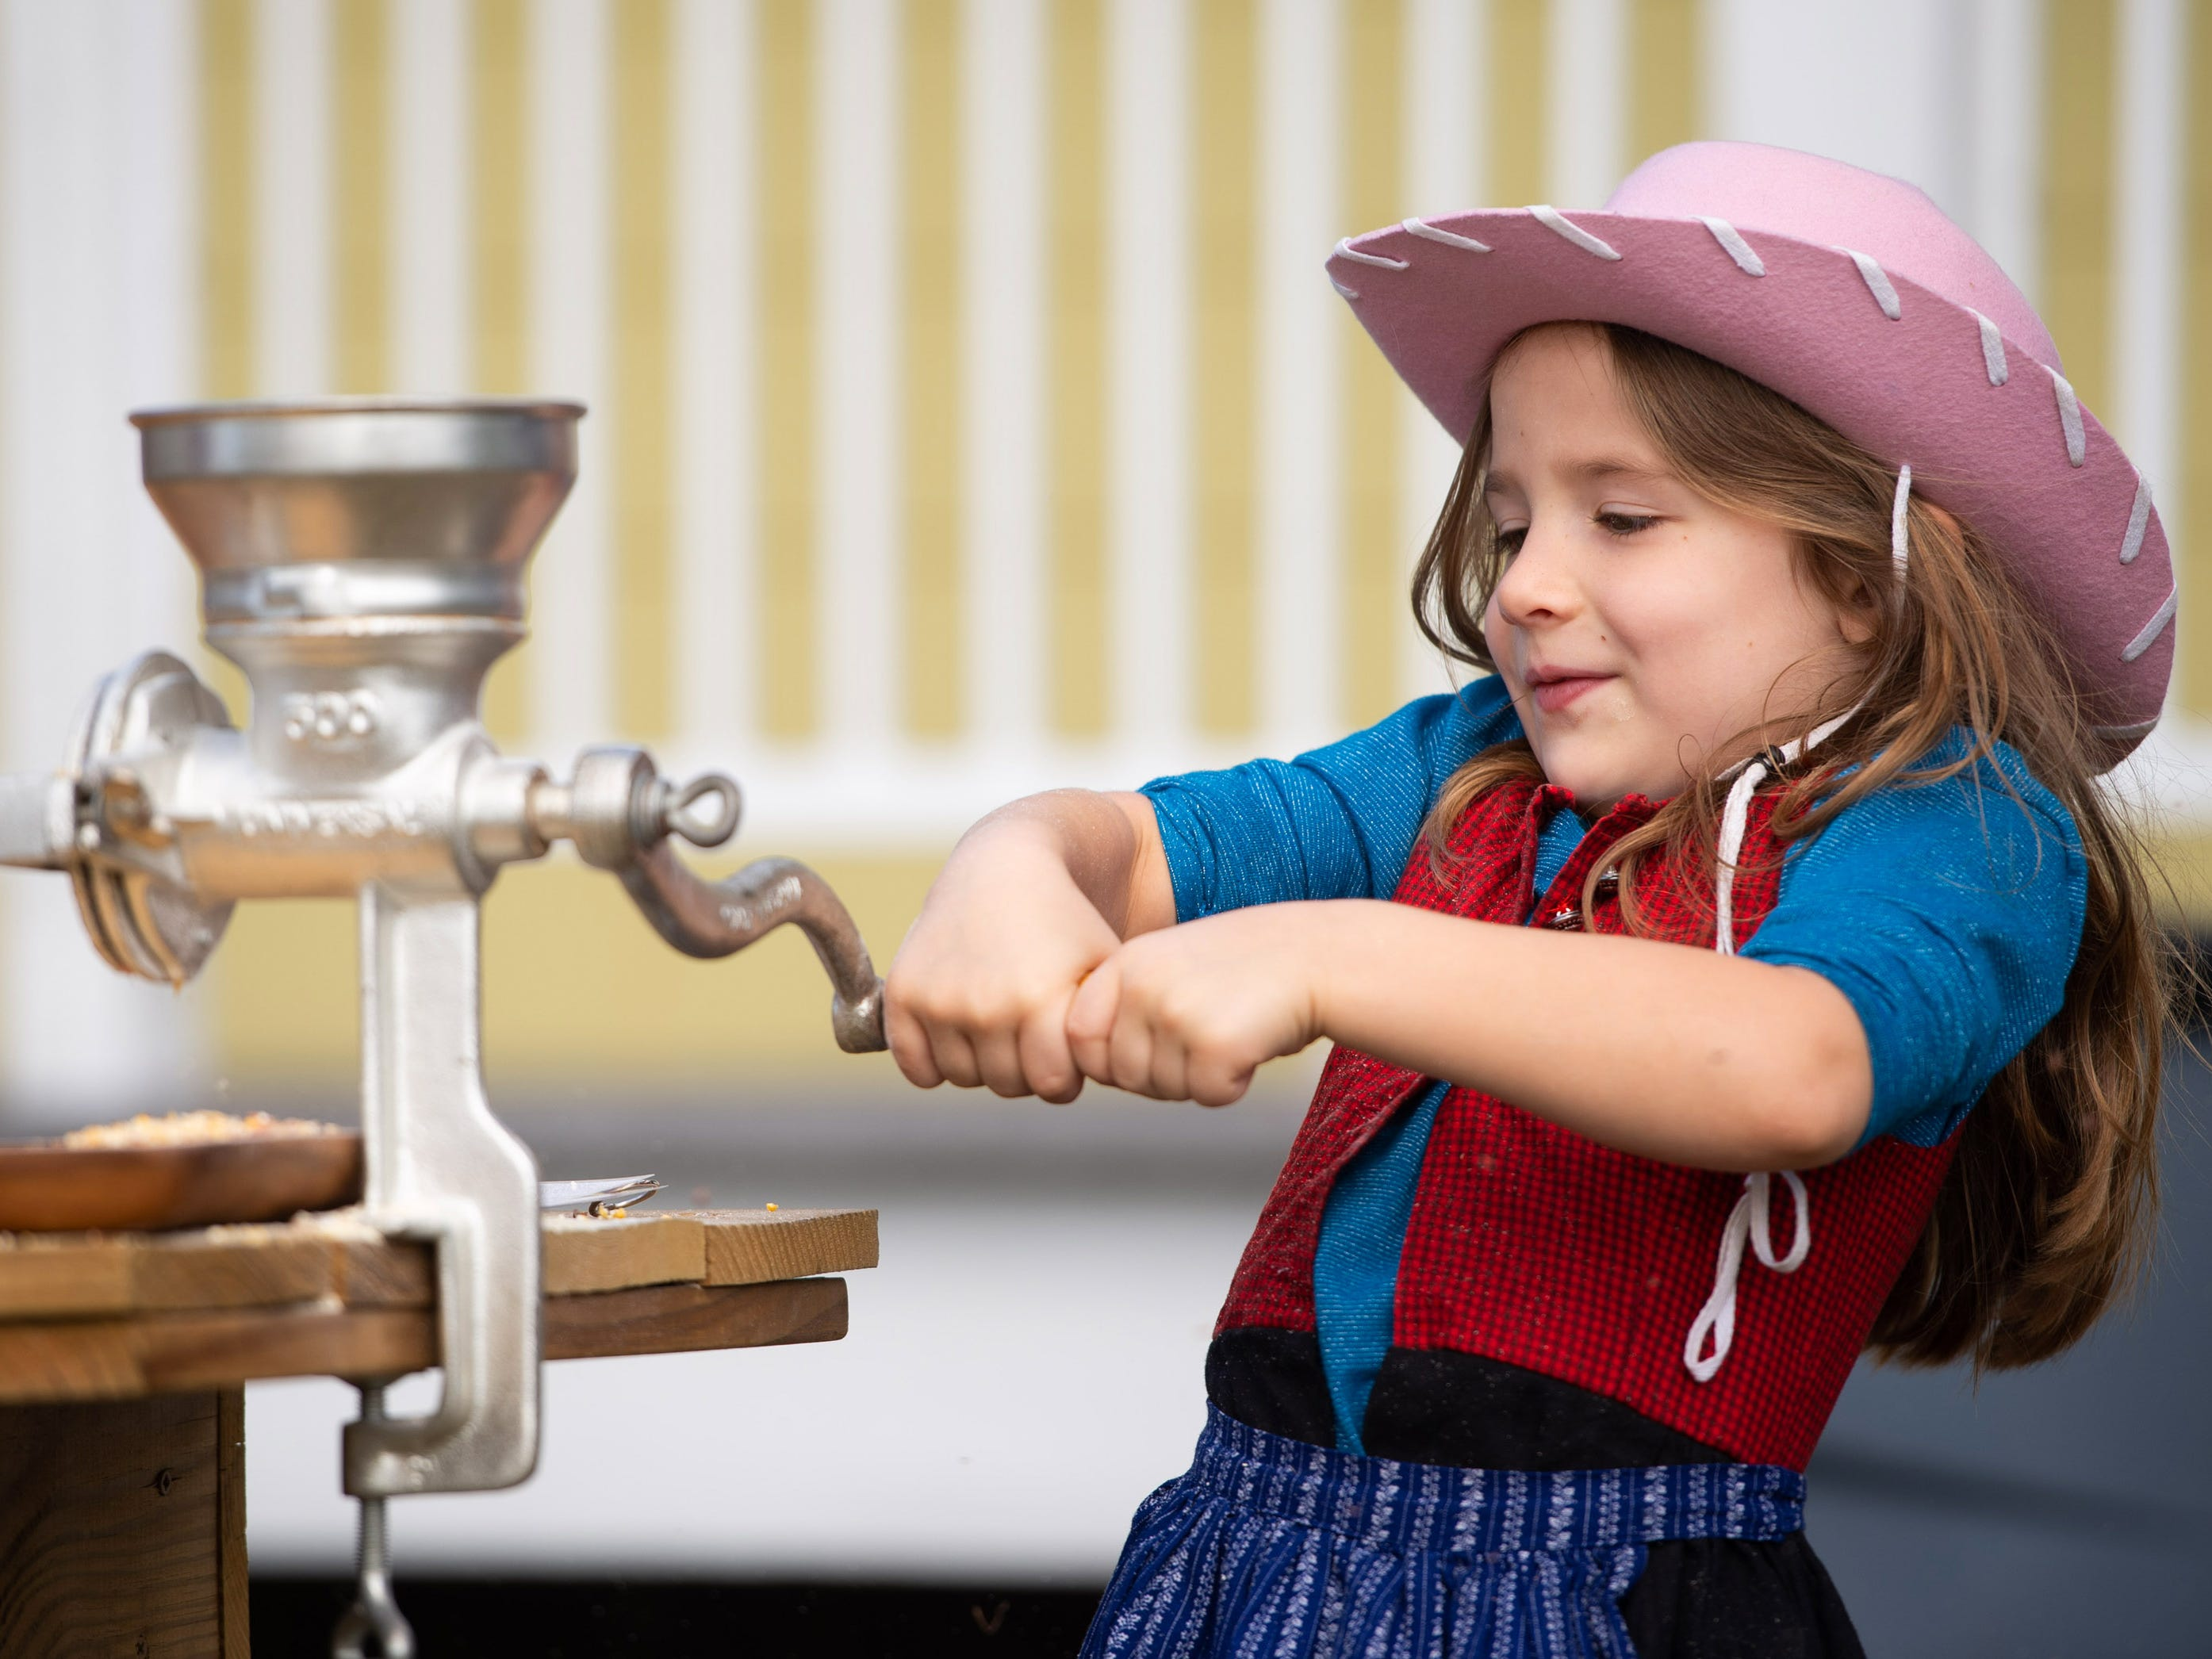 """Becca Kerns, 5, of Port St. Lucie, uses a corn grinder to make cornmeal during the Miss Lucie's 10th annual Pioneer Day Festival at Savannas Preserve State Park on Saturday, Jan. 5, 2019, in Port St. Lucie. """"I like grinding the corn but it is hard work,"""" said Kerns. The festival featured exhibits and demonstrations showcasing how Floridians lived in the mid-19th century."""